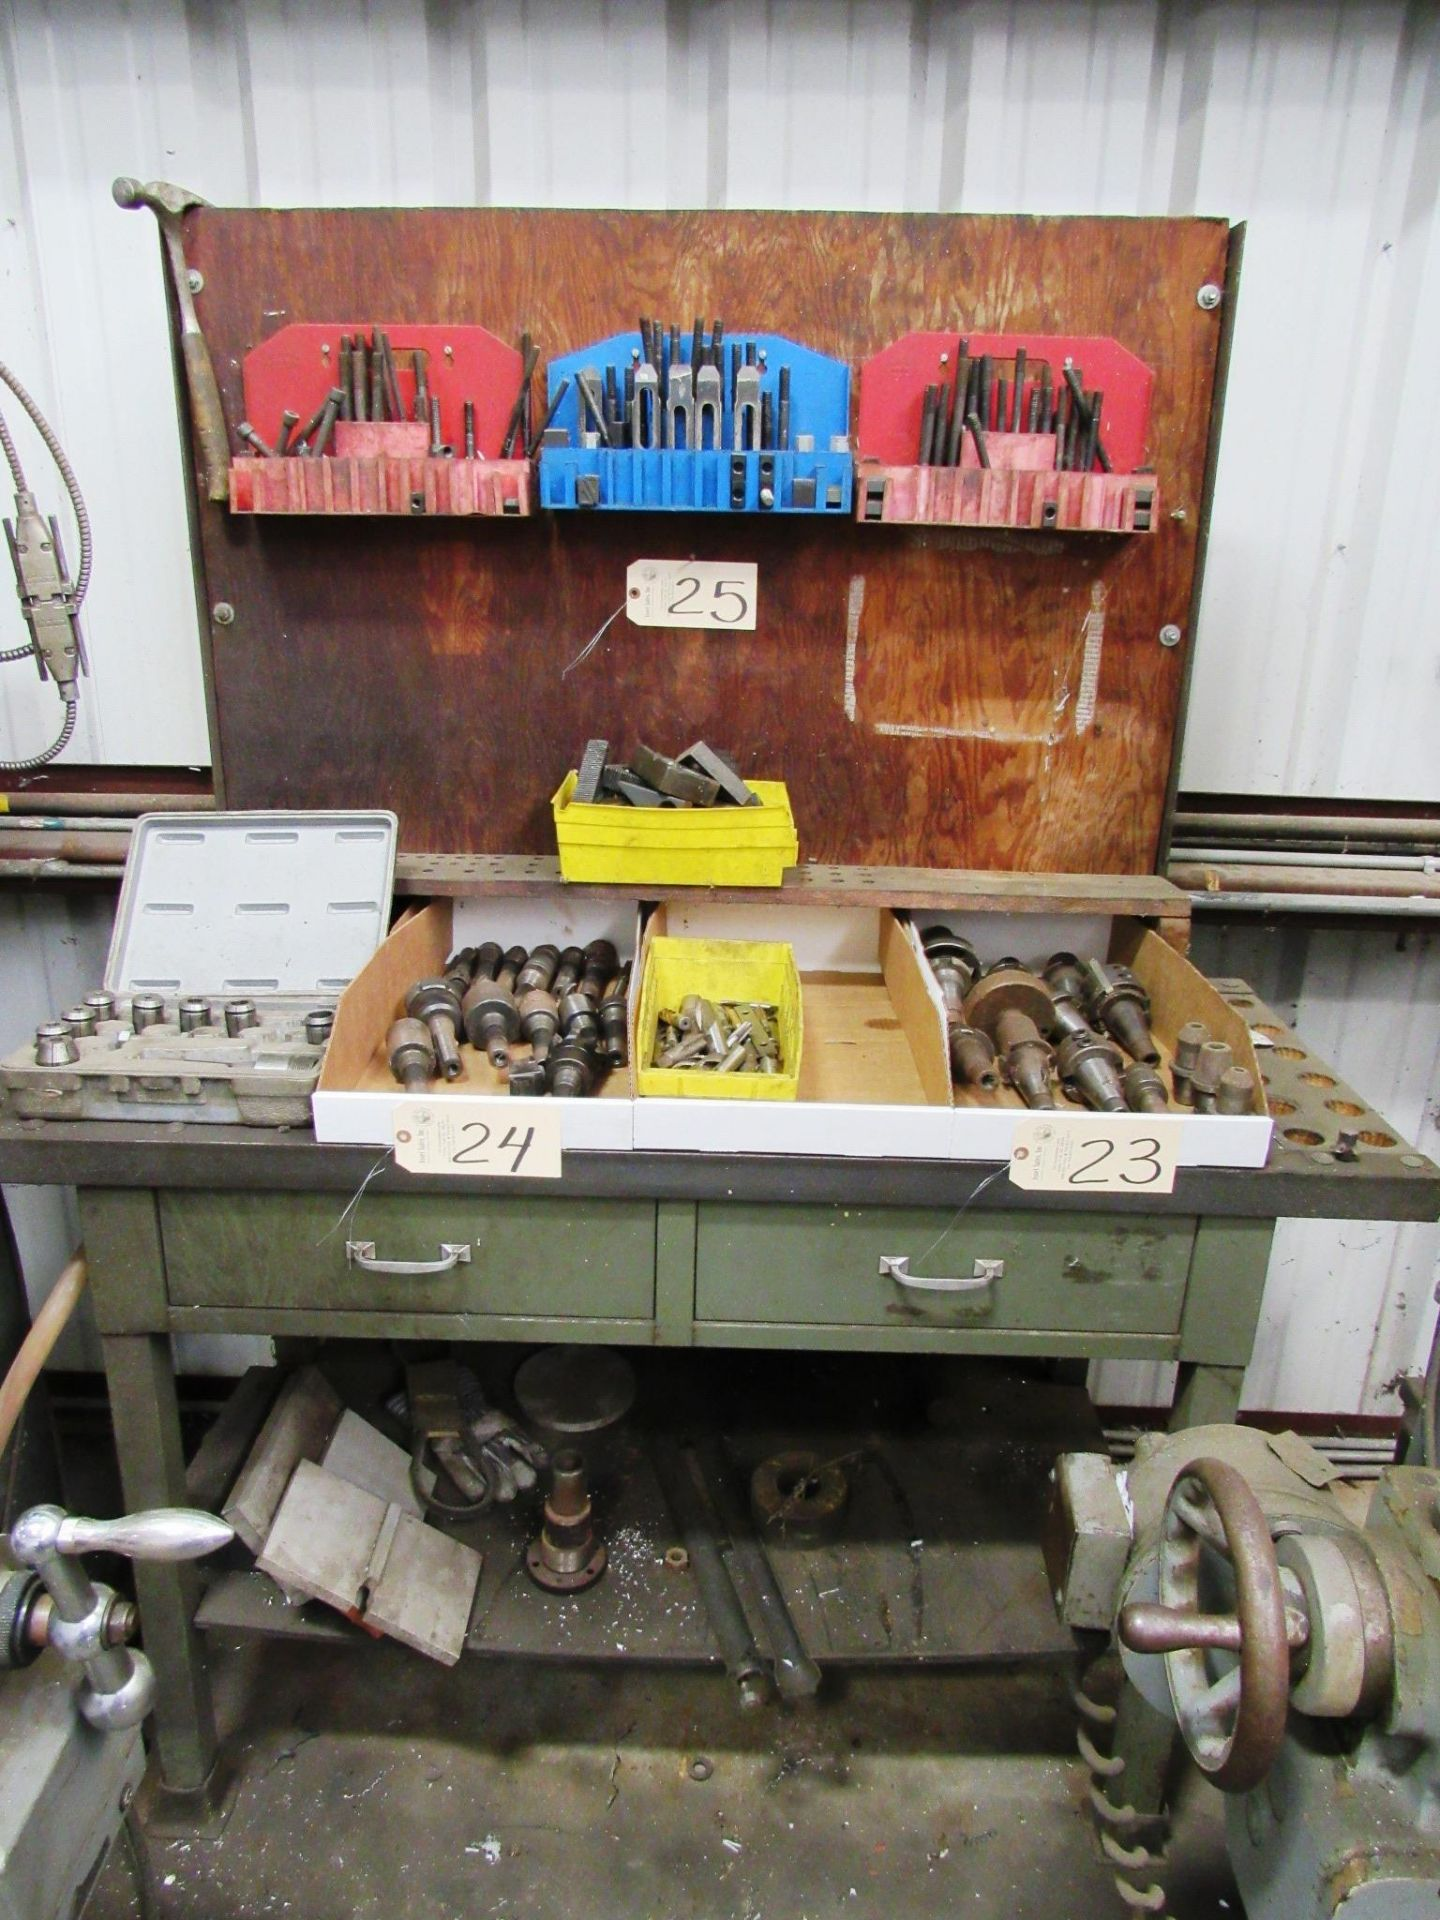 Lot 25 - Workbench & Set-Up Tooling